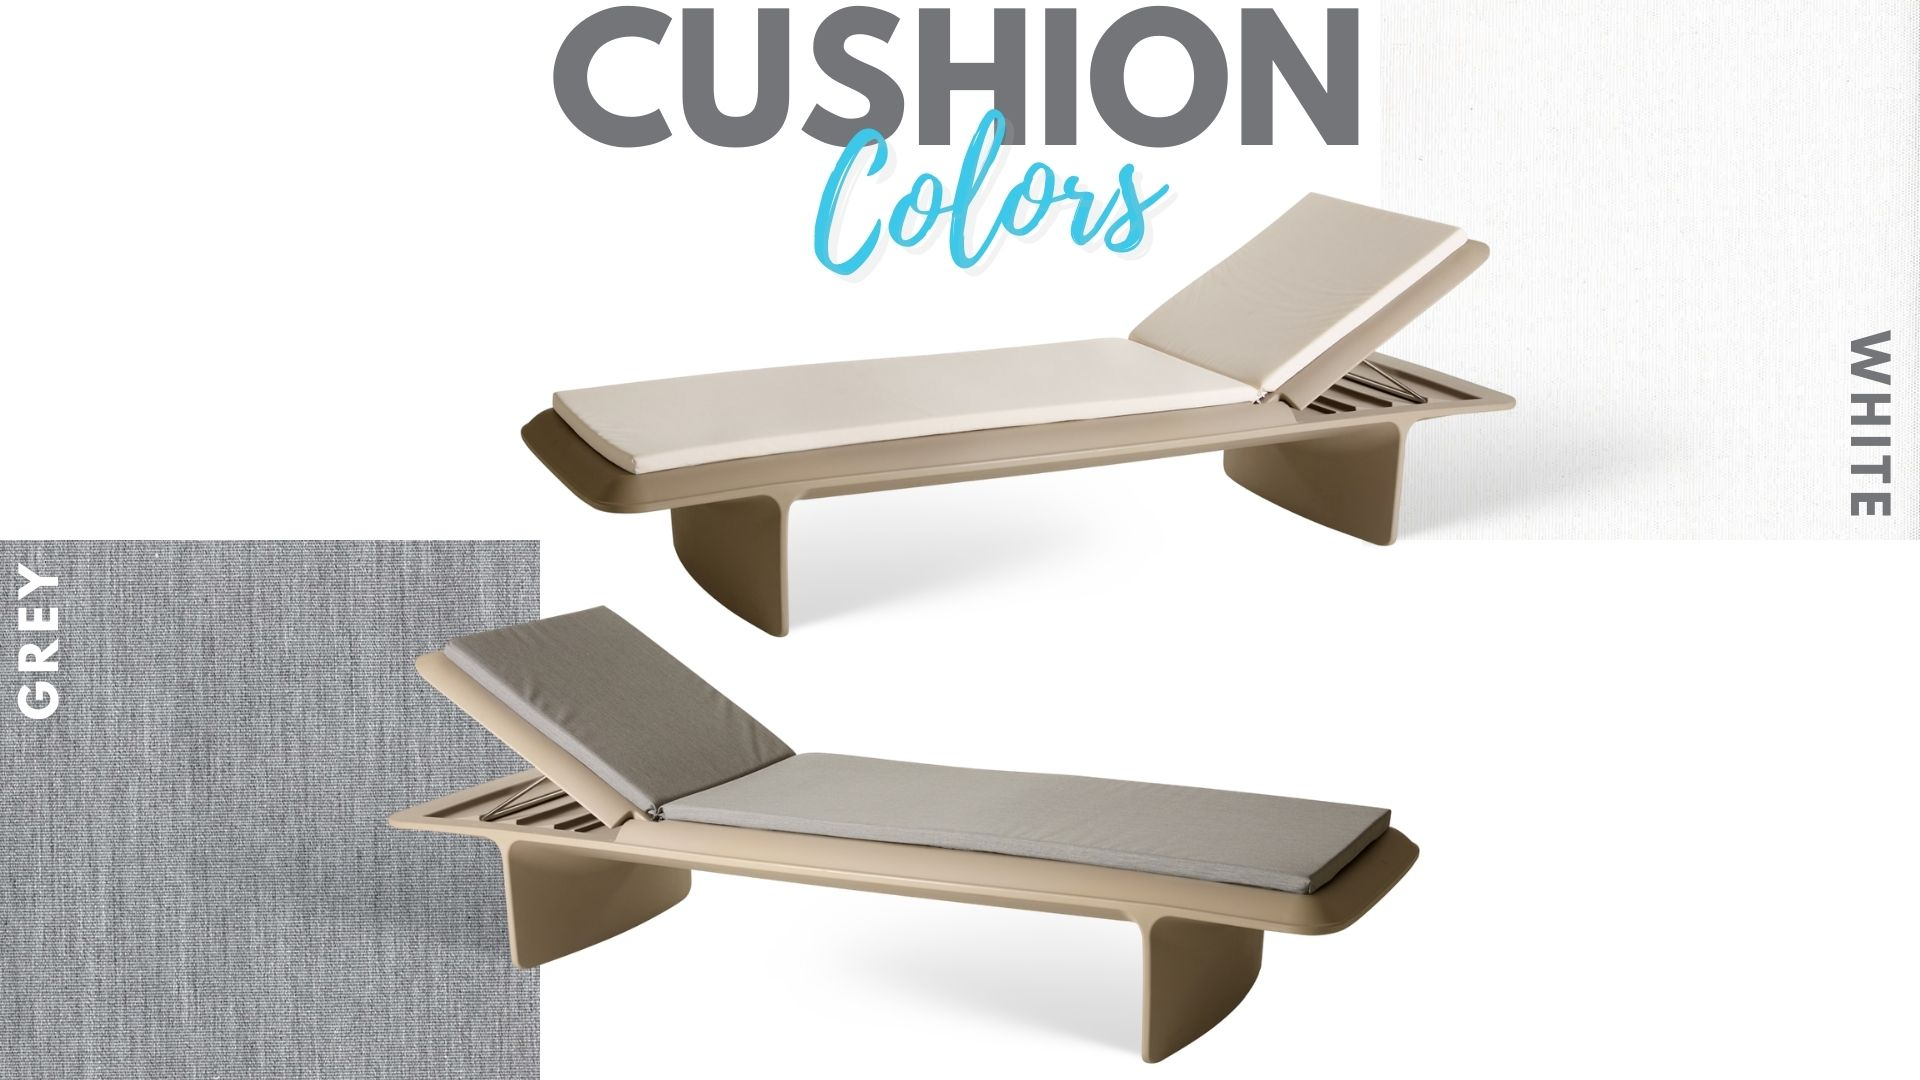 ponente-chaise-cushion-colors